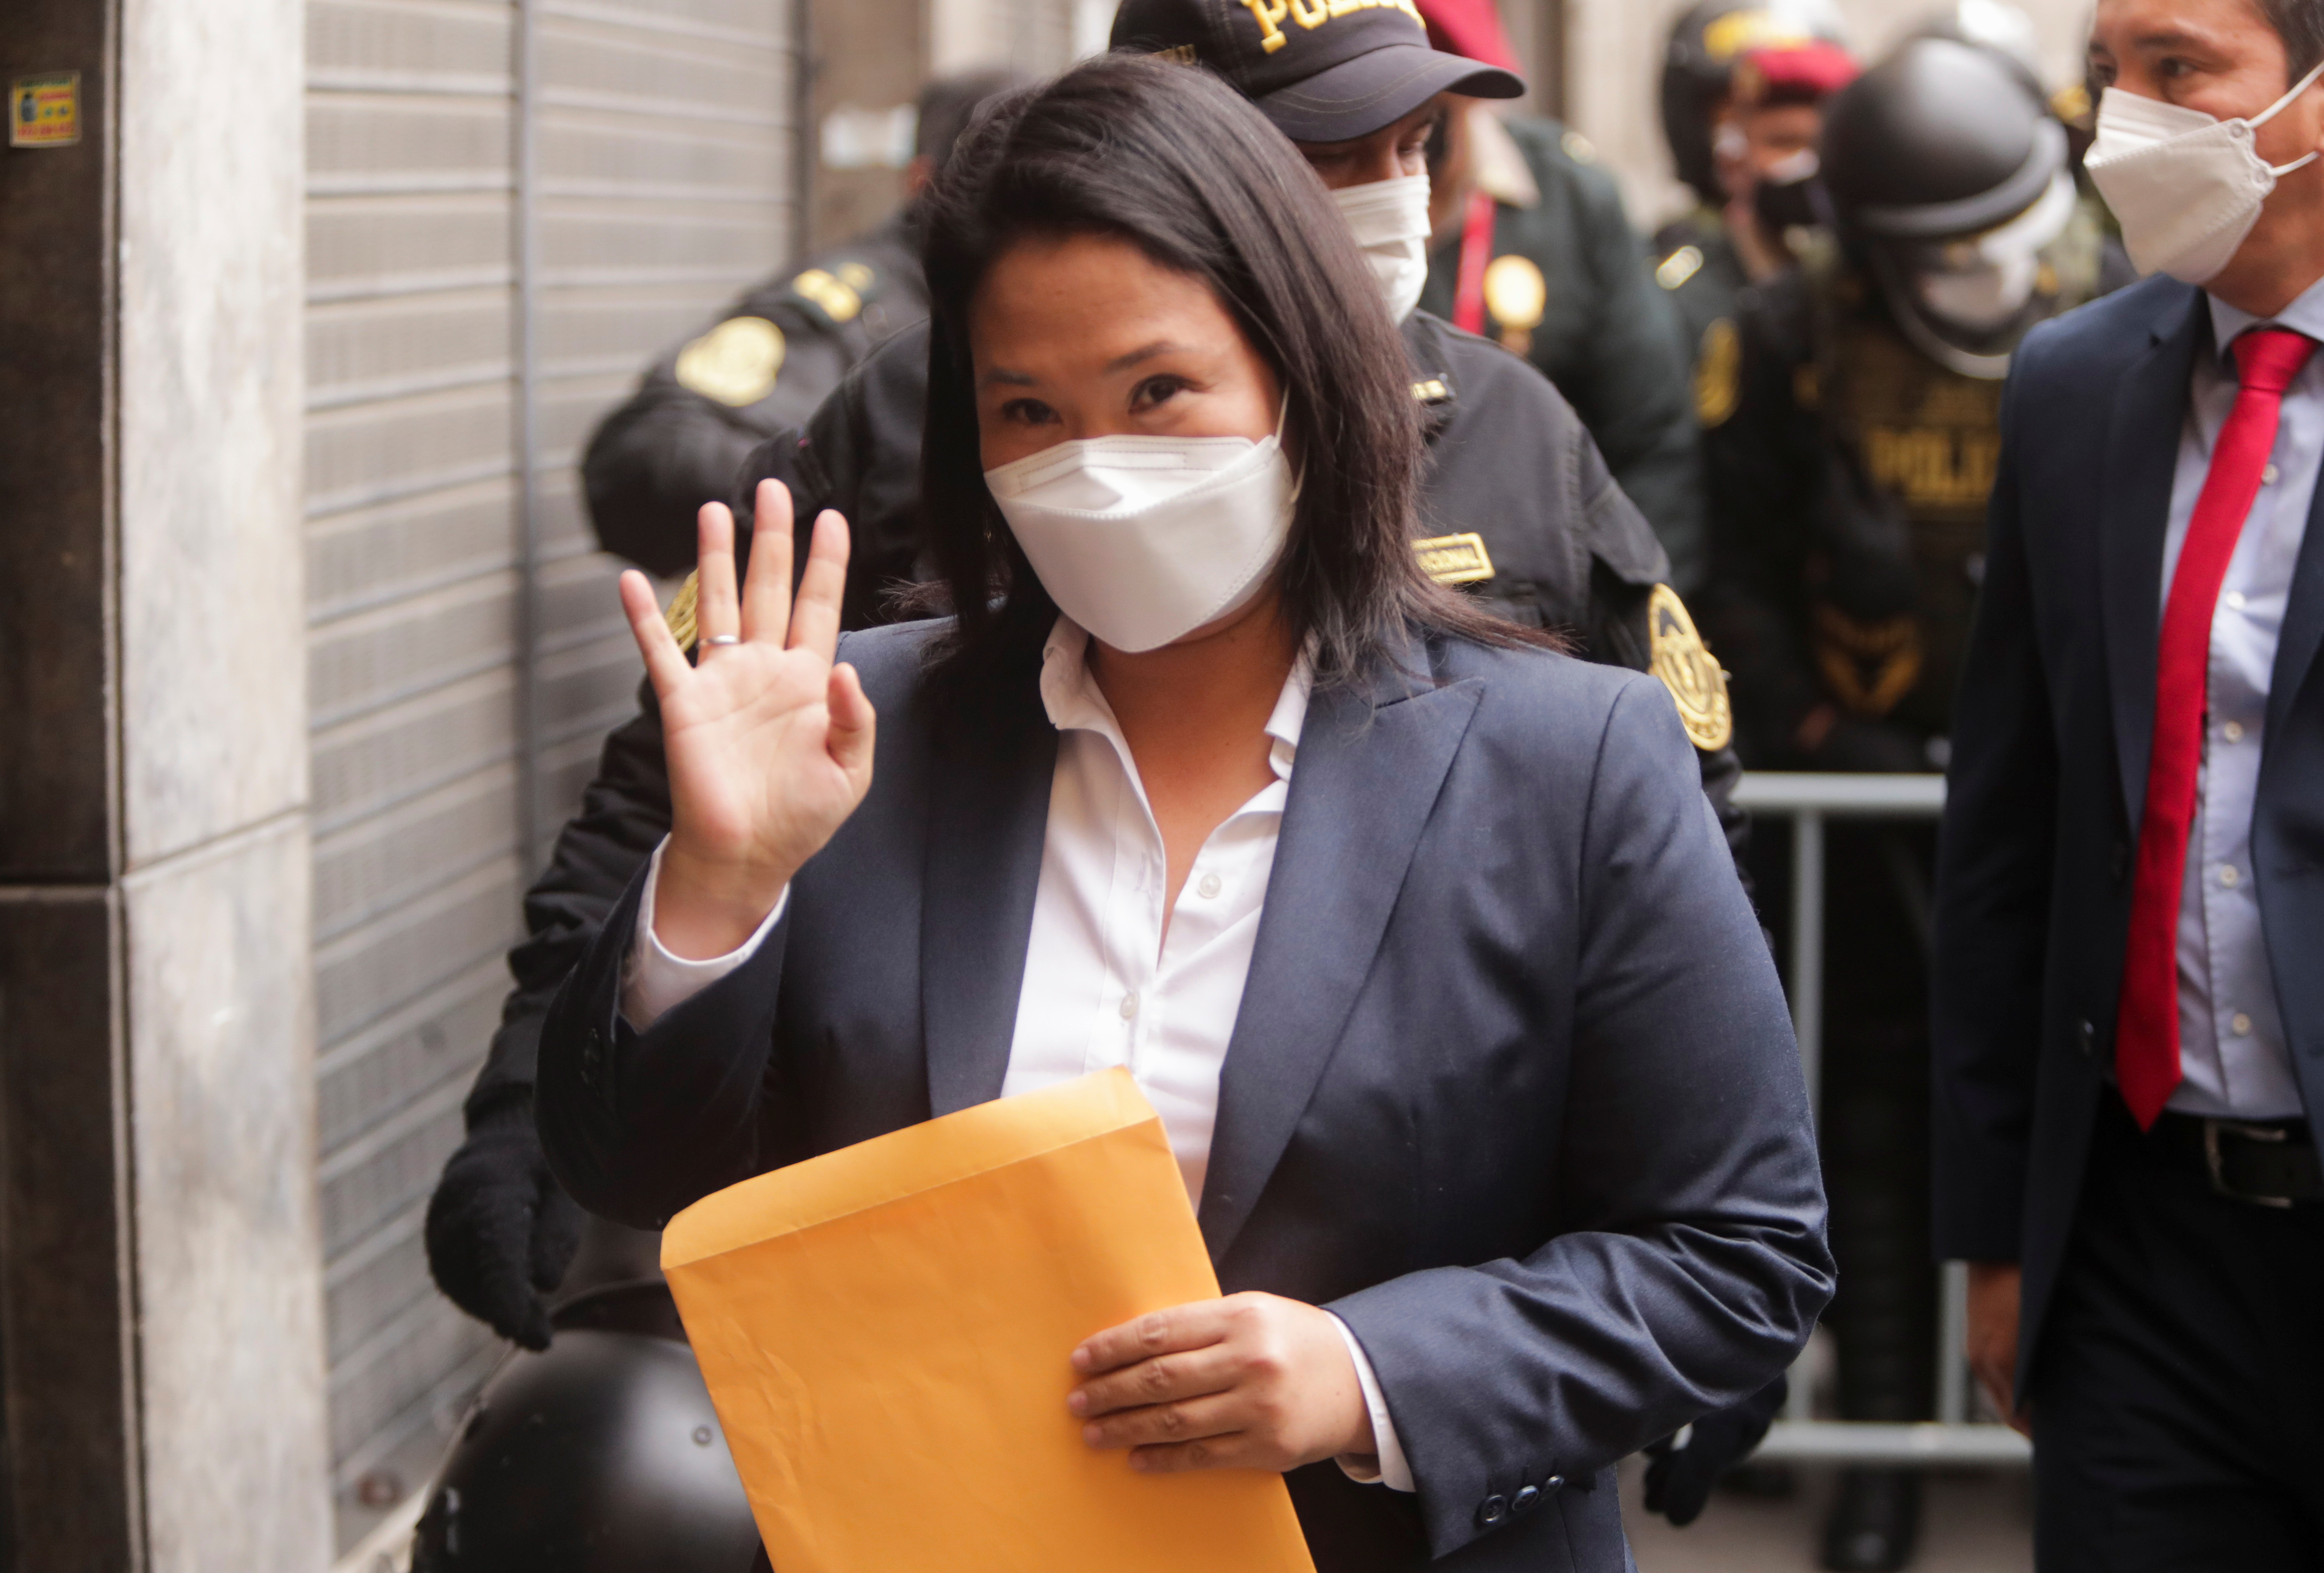 Peru's presidential candidate Keiko Fujimori gestures to the media before delivering a letter requesting an international audit of the vote to the government palace, in Lima, Peru June 28, 2021. REUTERS/Sebastian Castaneda